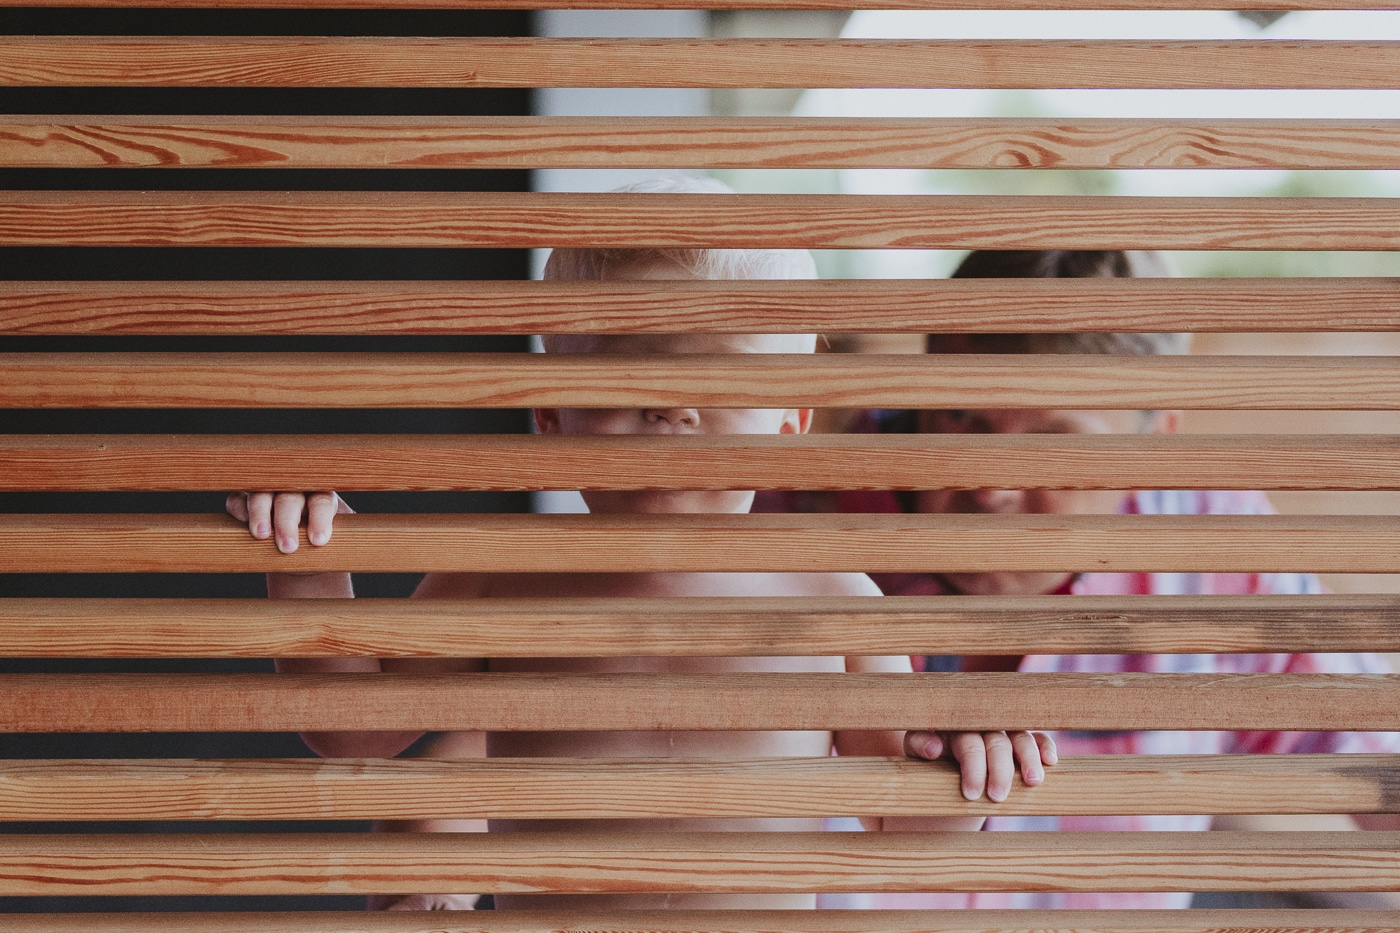 Small blonde boy and man look through wooden slats